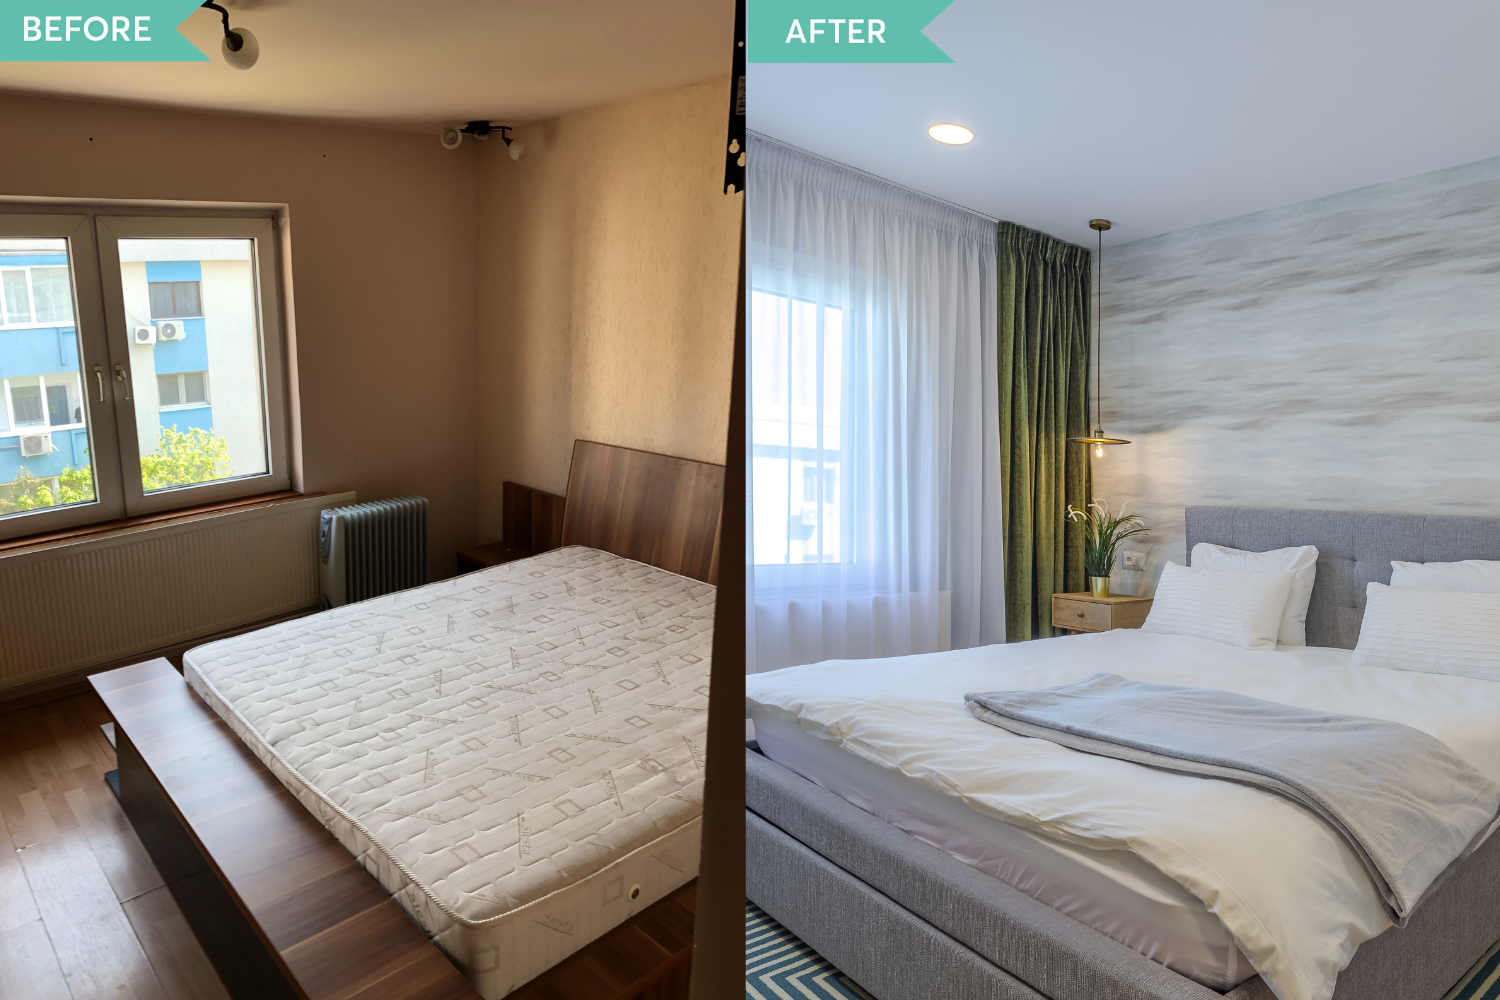 Renovare apartament Aviatiei - before and after _ Arh. Cristiana Zgripcea (9)